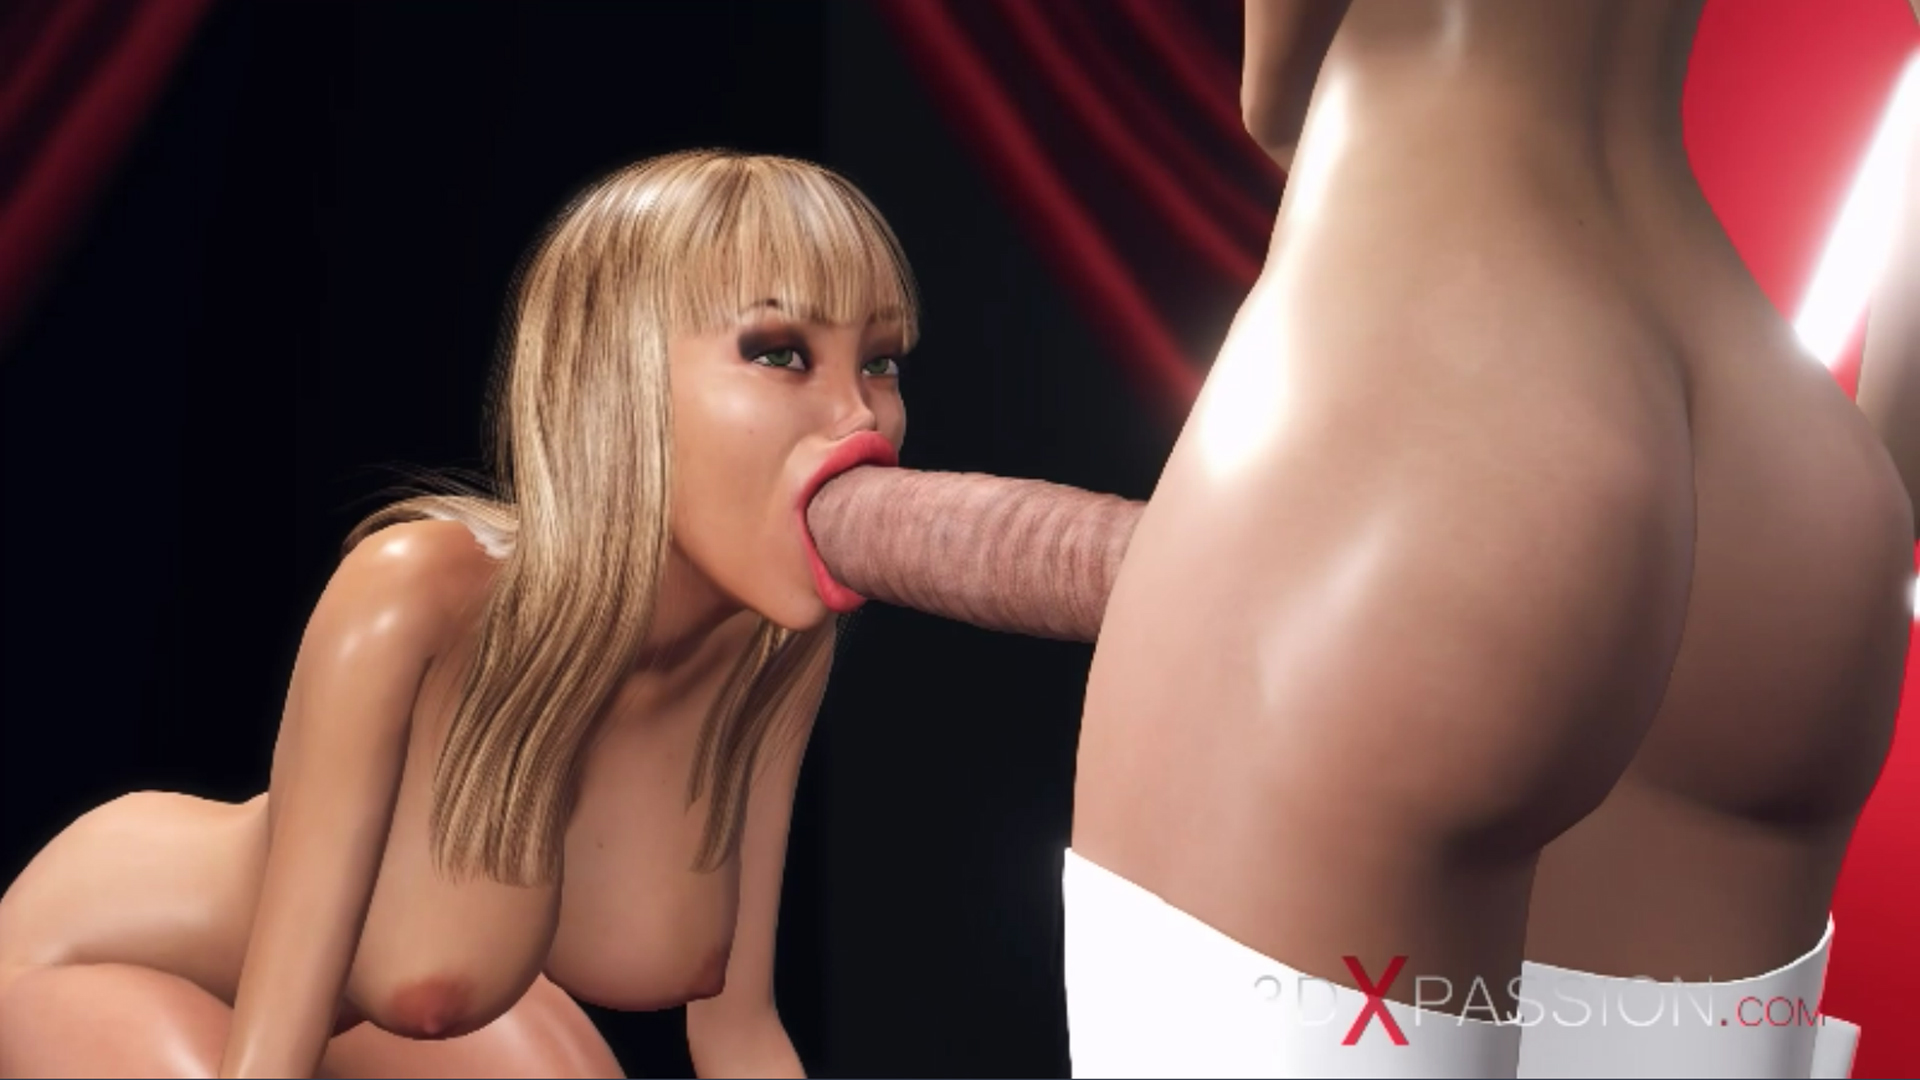 horny blonde giving blowjob 3d dickgirl shemale fashion model podium